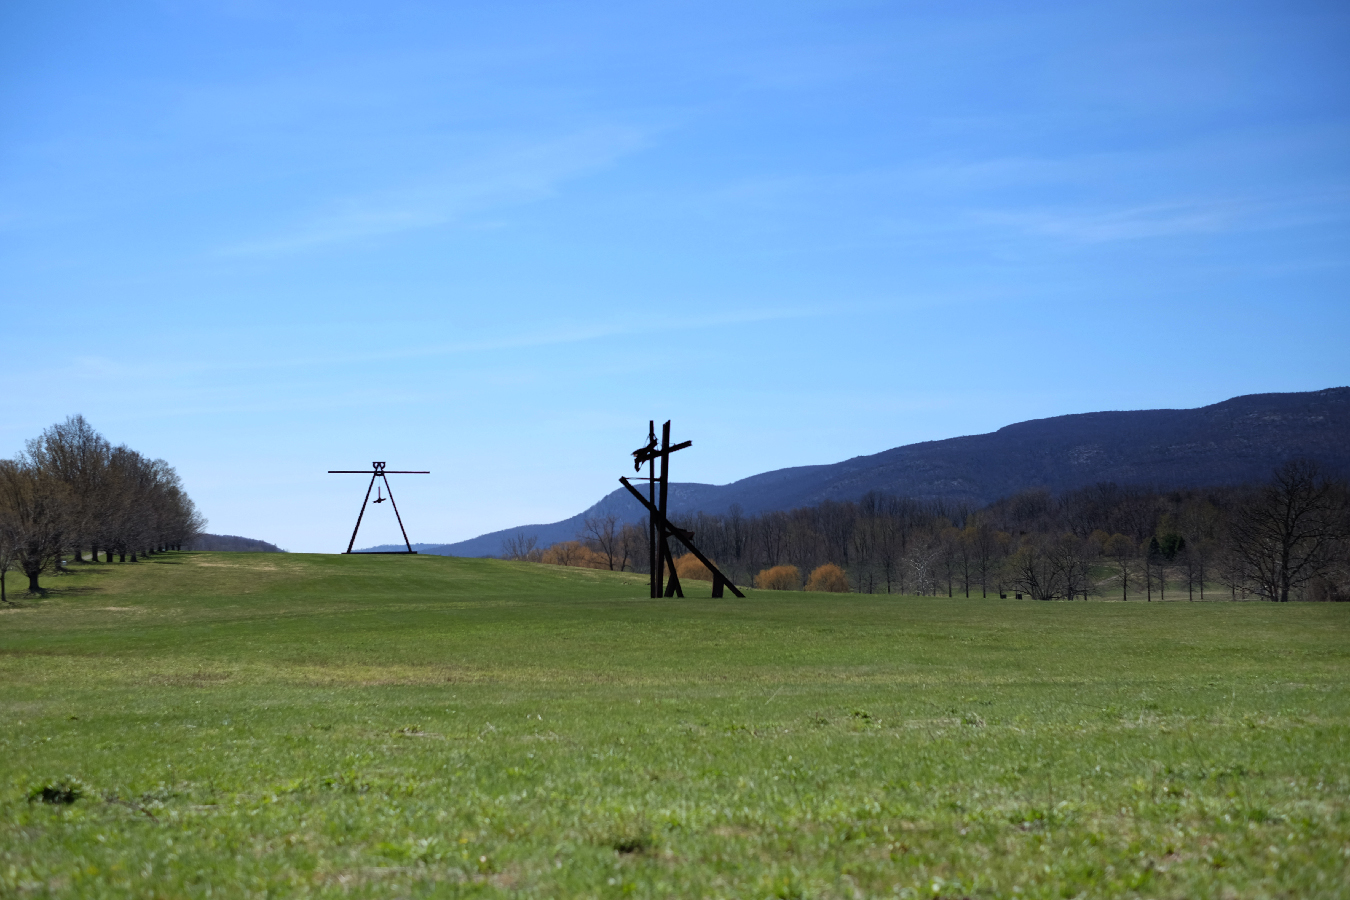 We arrived at Storm King Sculpture Center, in upstate NY, Saturday afternoon. This vast park is an outdoor museum for monumental sculptures by DiSuvero, Calder, Richard Serra, David Smith, Maya Lin and Andy Goldsworthy - and many more.